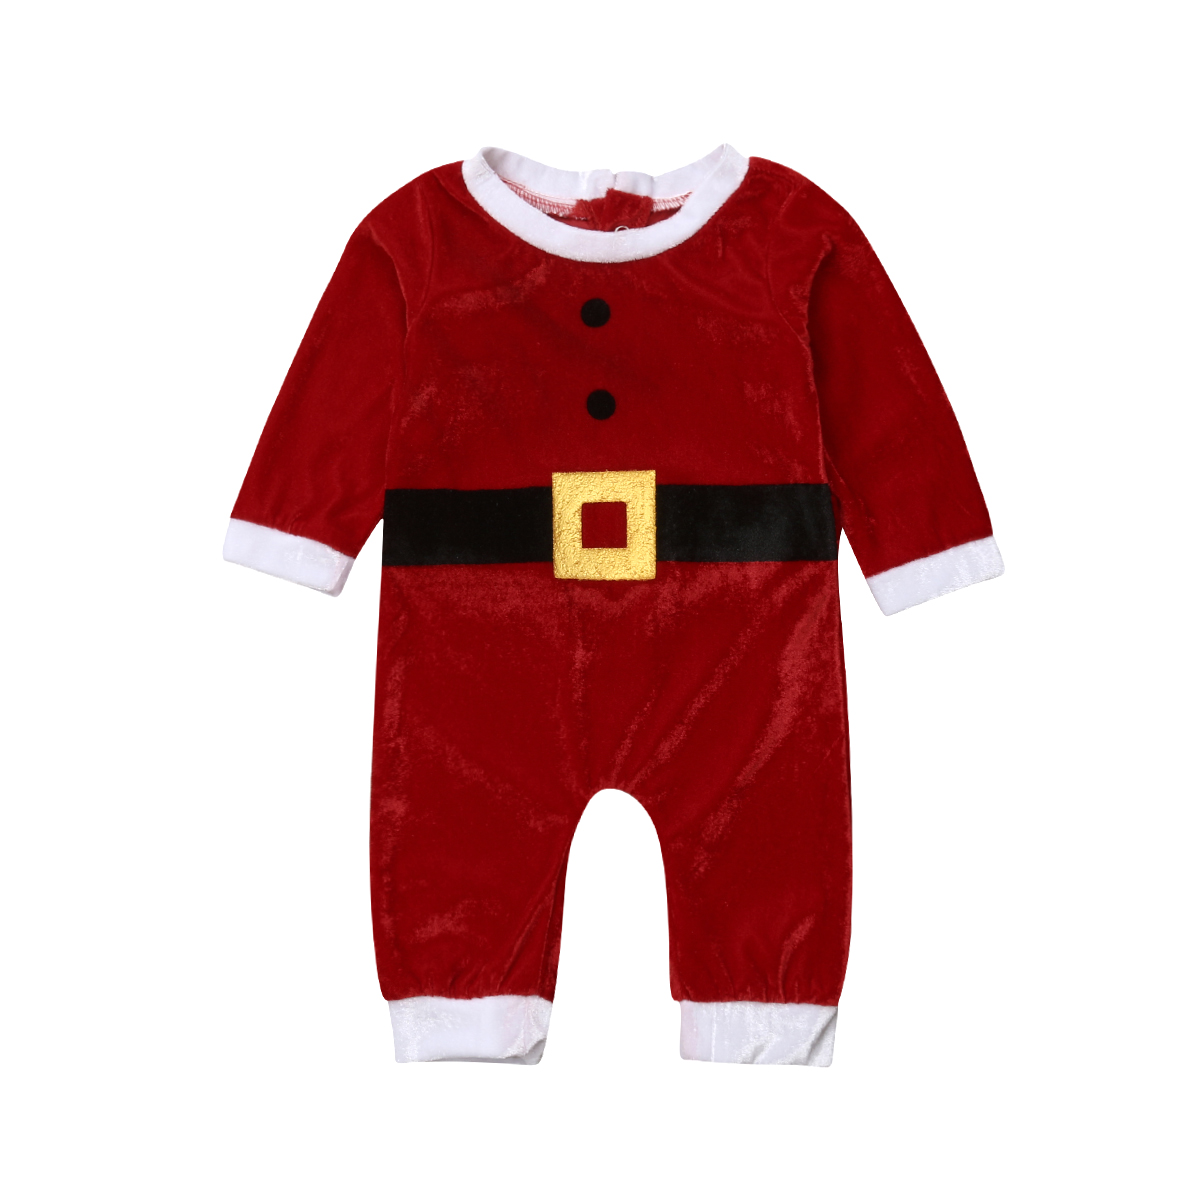 2019 New Baby Clothes One Piece Winter   Romper   Christmas Fit Nightwear New Born Baby Clothes Santa Claus Warm Long Sleeve   Romper